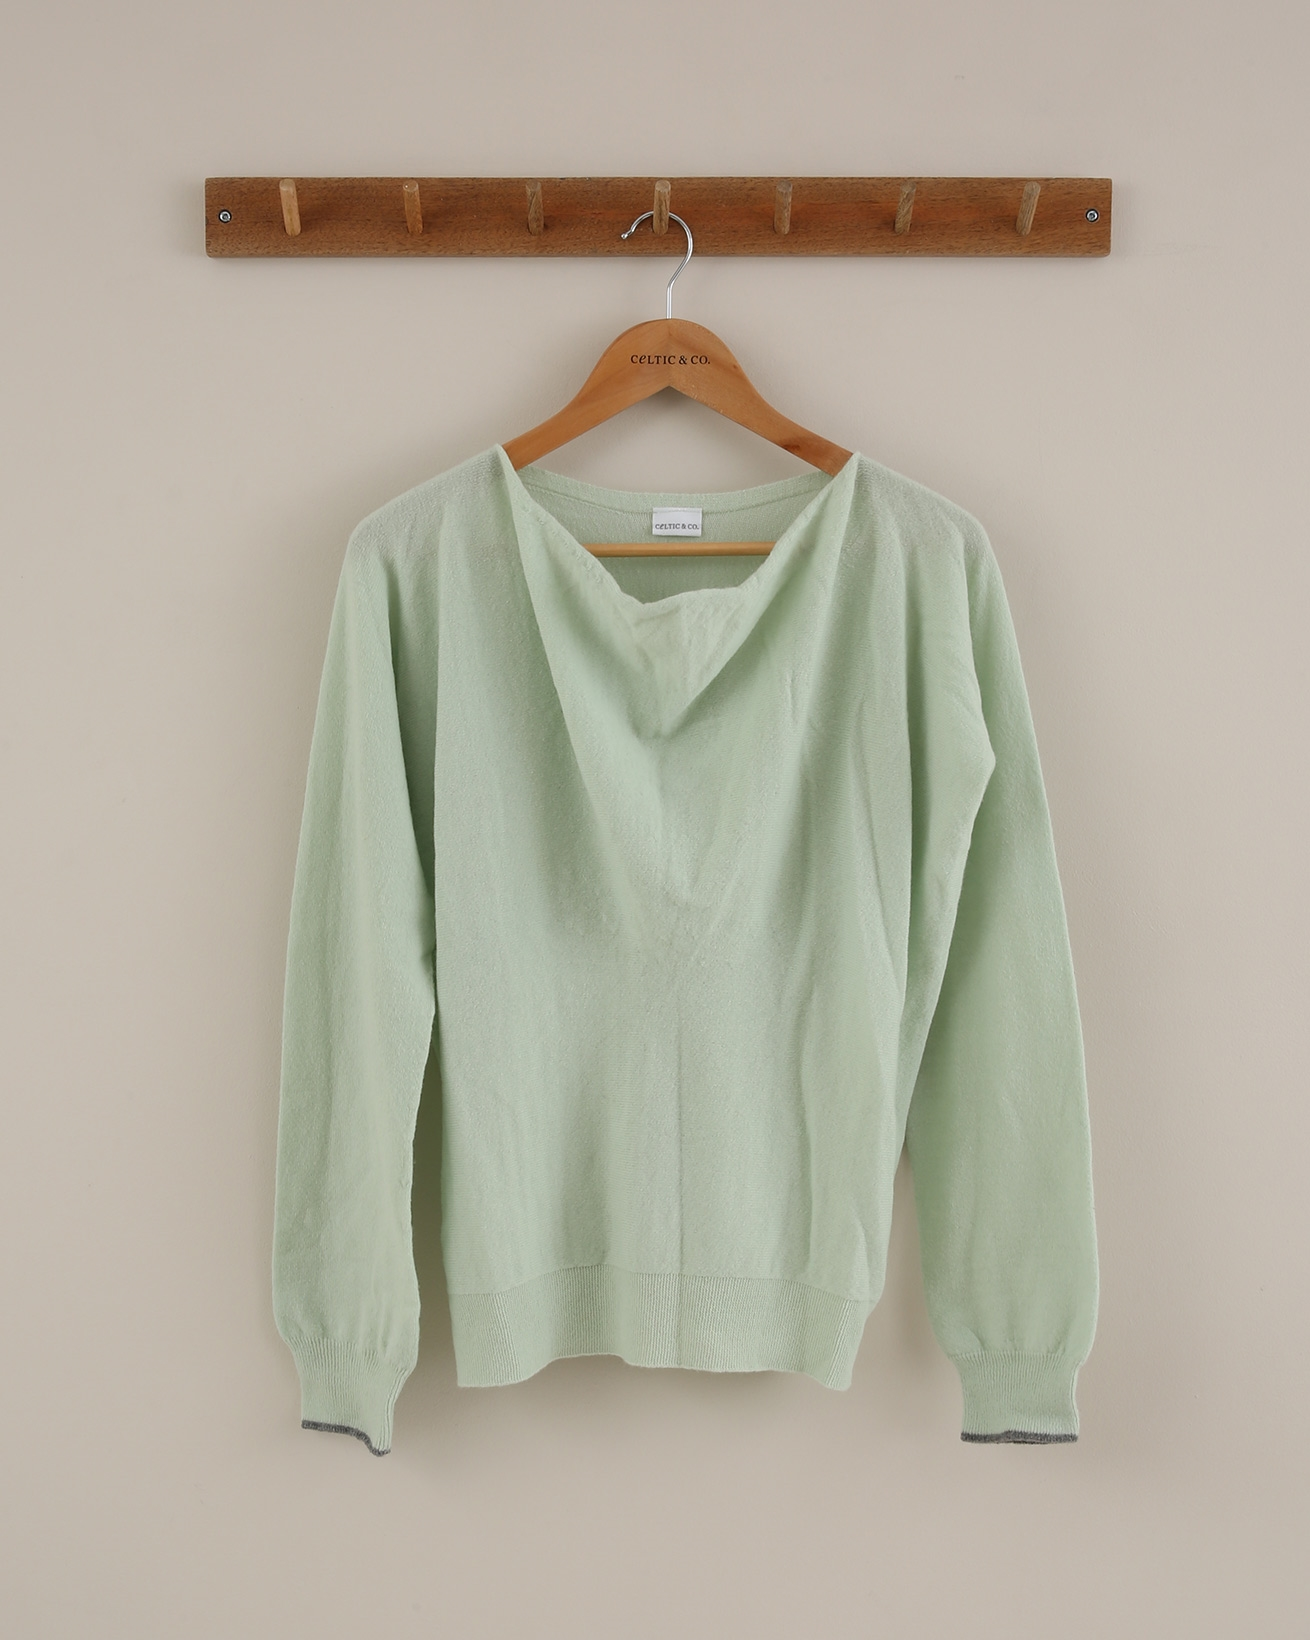 Soft Cowl Jumper - Size Small - Mint/Grey Tipped - 1842